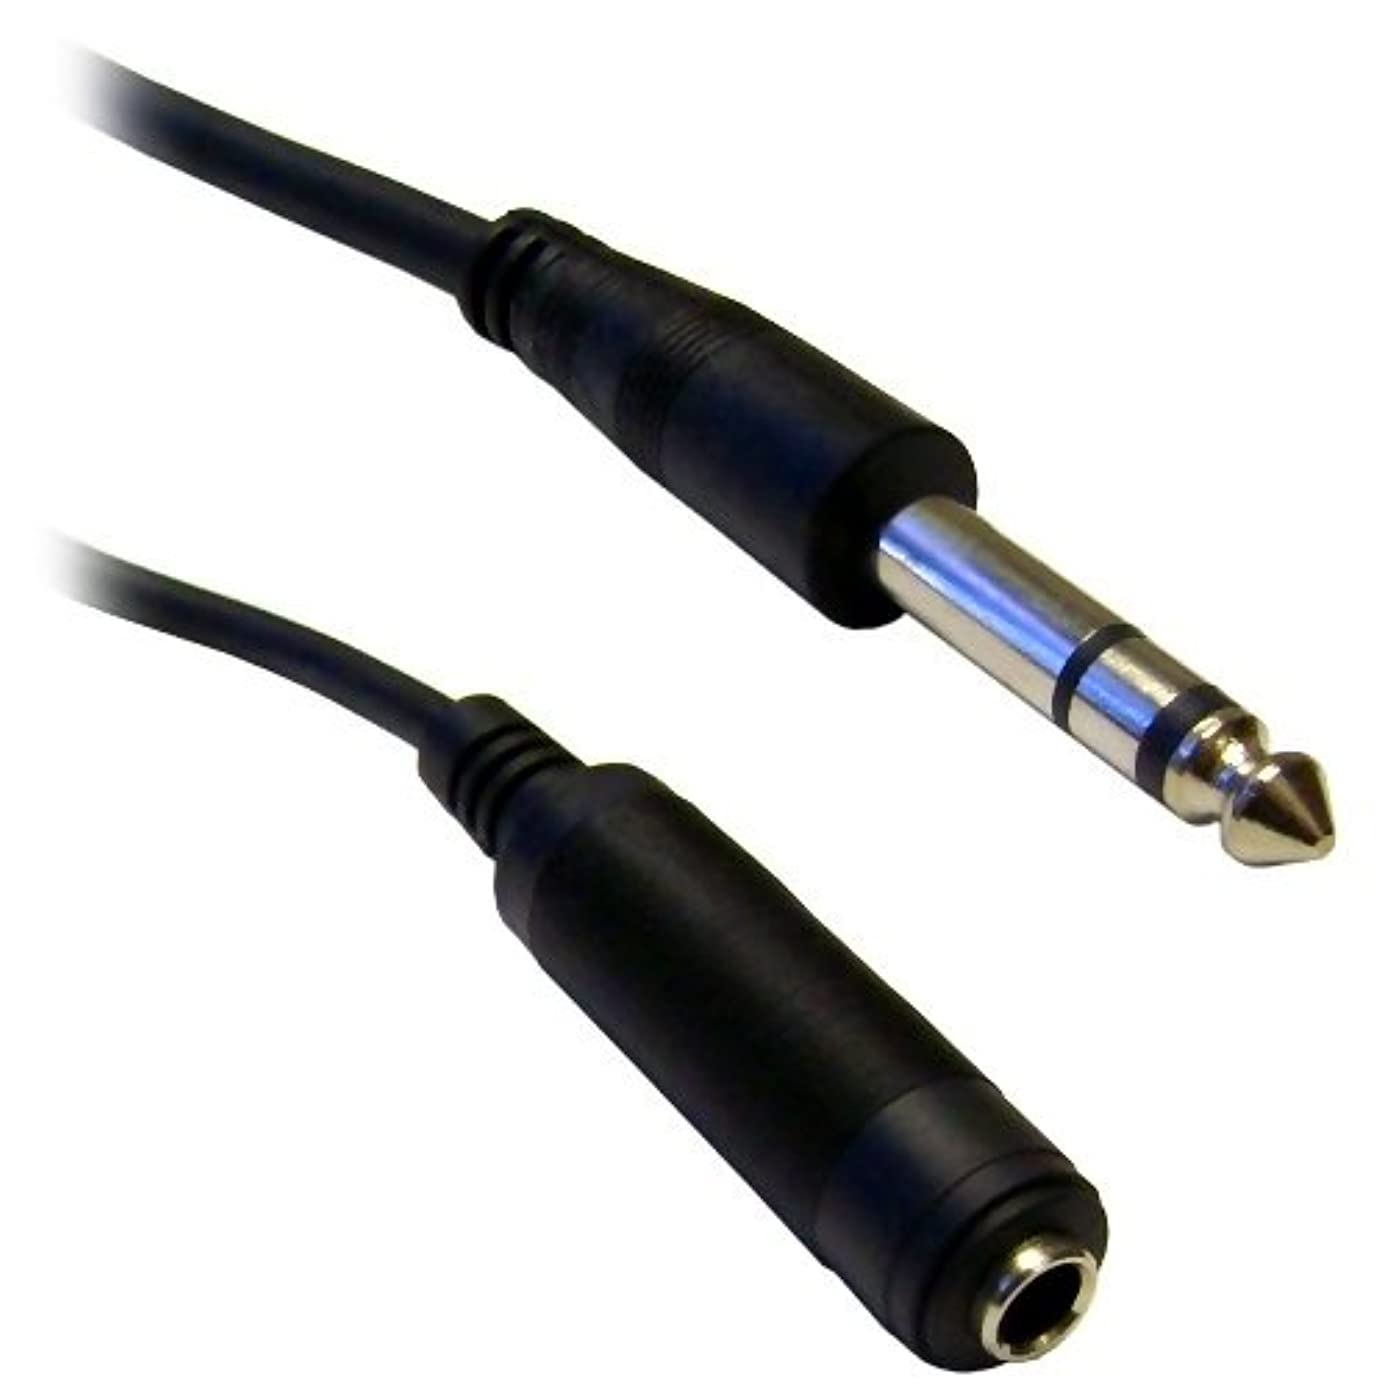 C&E CNE40377 15-Feet 1/4-Inch Stereo Extension Cable, TRS, Balanced, 1/4-Inch Male to 1/4-Inch Female